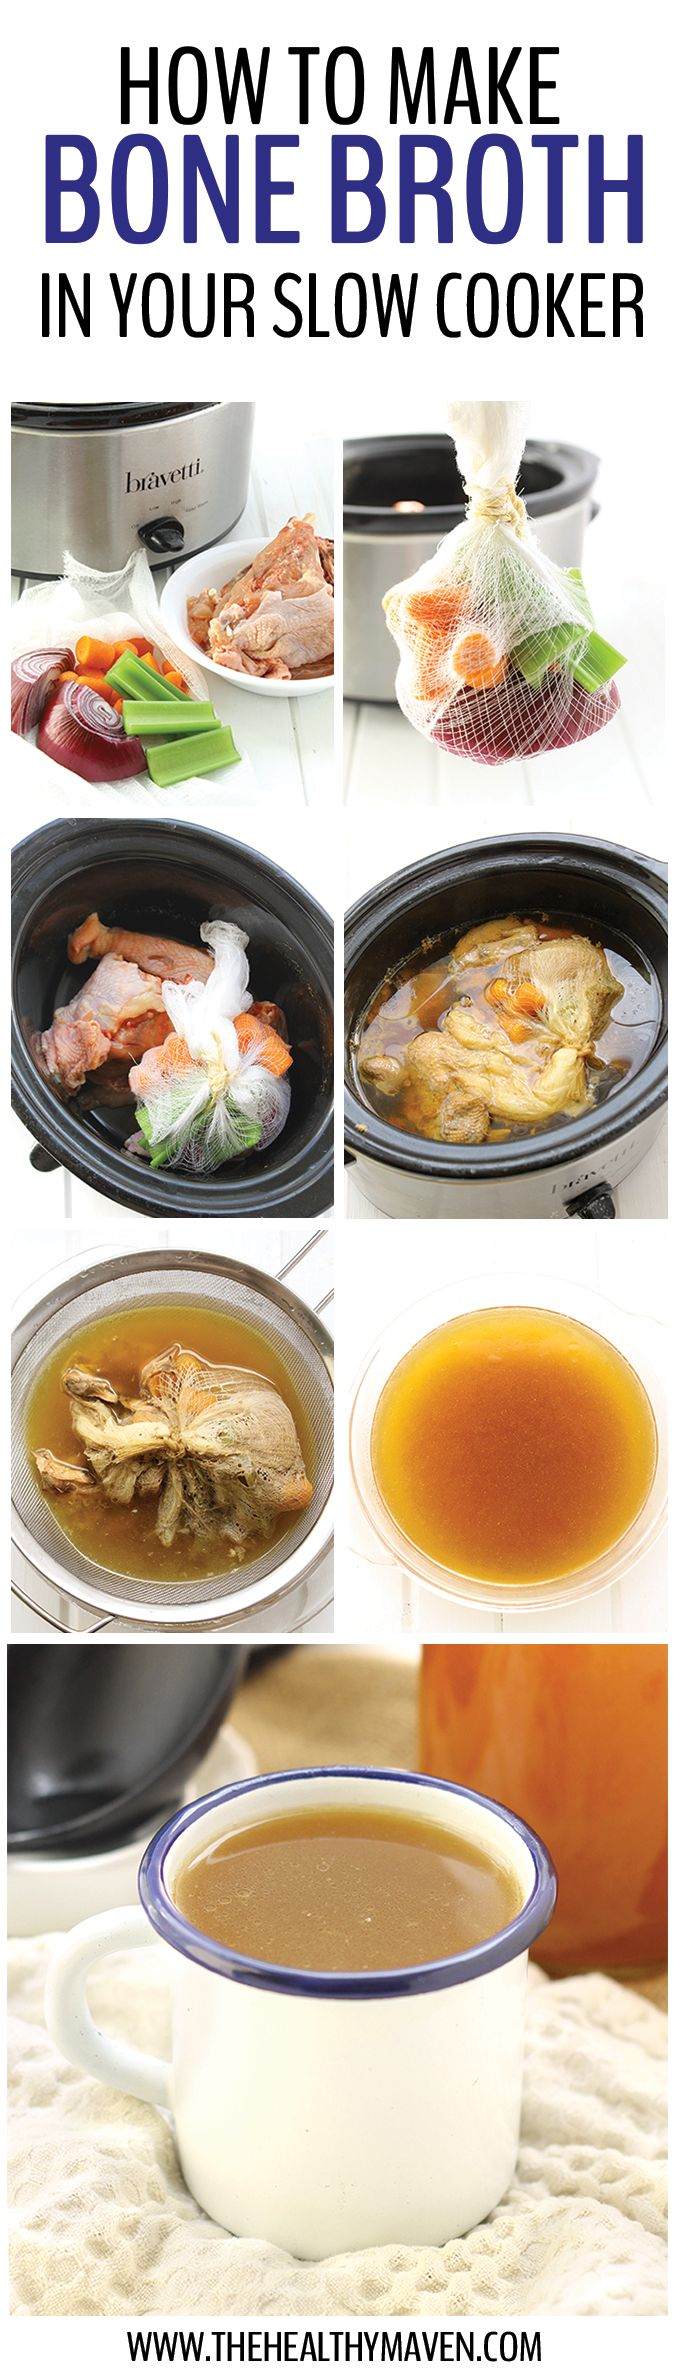 Bone Broth by thehealthymaven: Learn how to make bone broth in your slow cooker. It requires minimal ingredients and steps but a whole lot of patience as your house fills with the delicious scent of homemade broth. #Bone_Broth #Slow_Cooker #Healthy